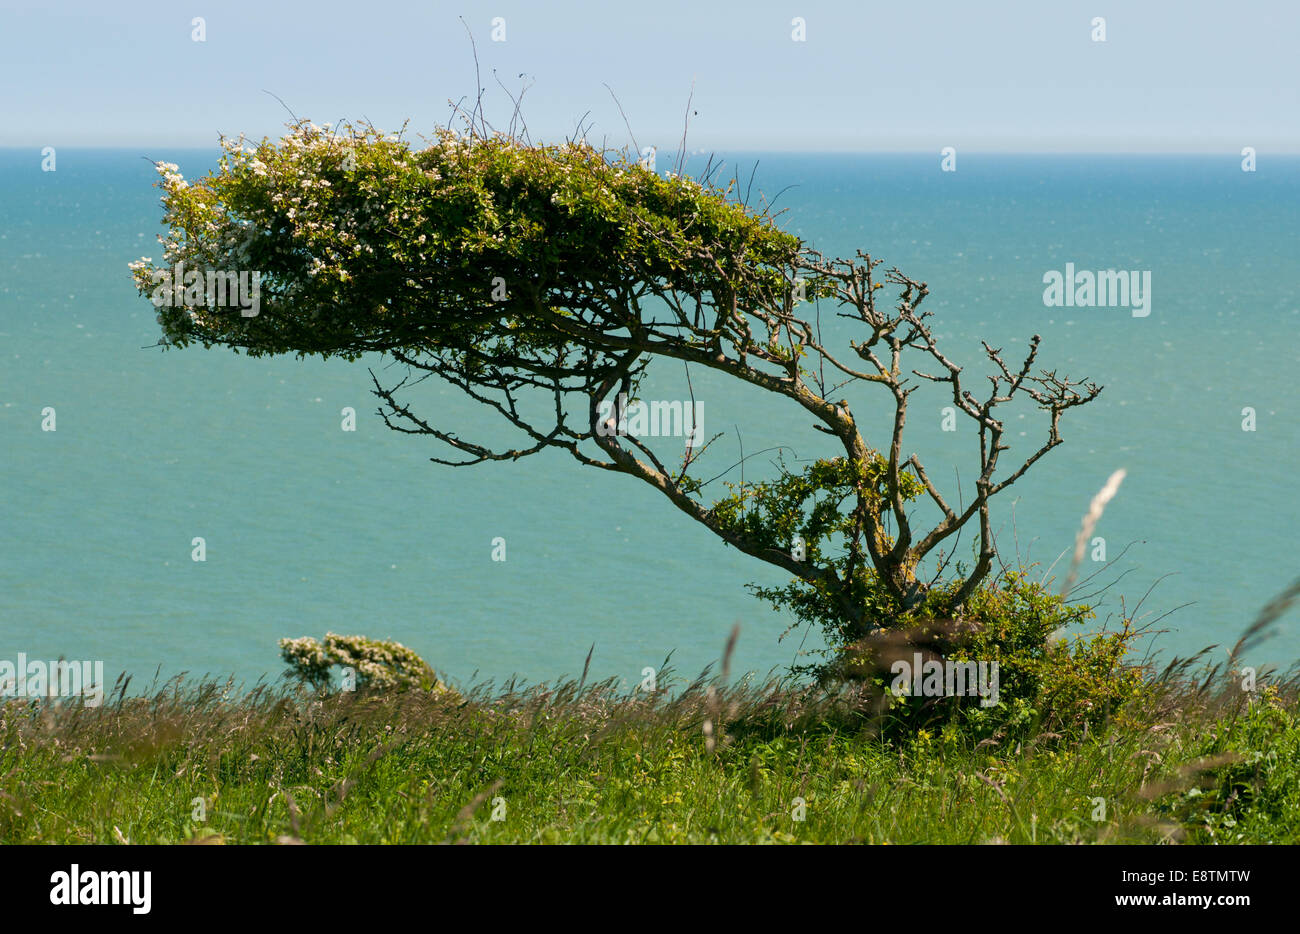 A Hawthorn tree bent in the direction of the prevailing wind on the cliff top at Eastbourne against a sea and sky - Stock Image